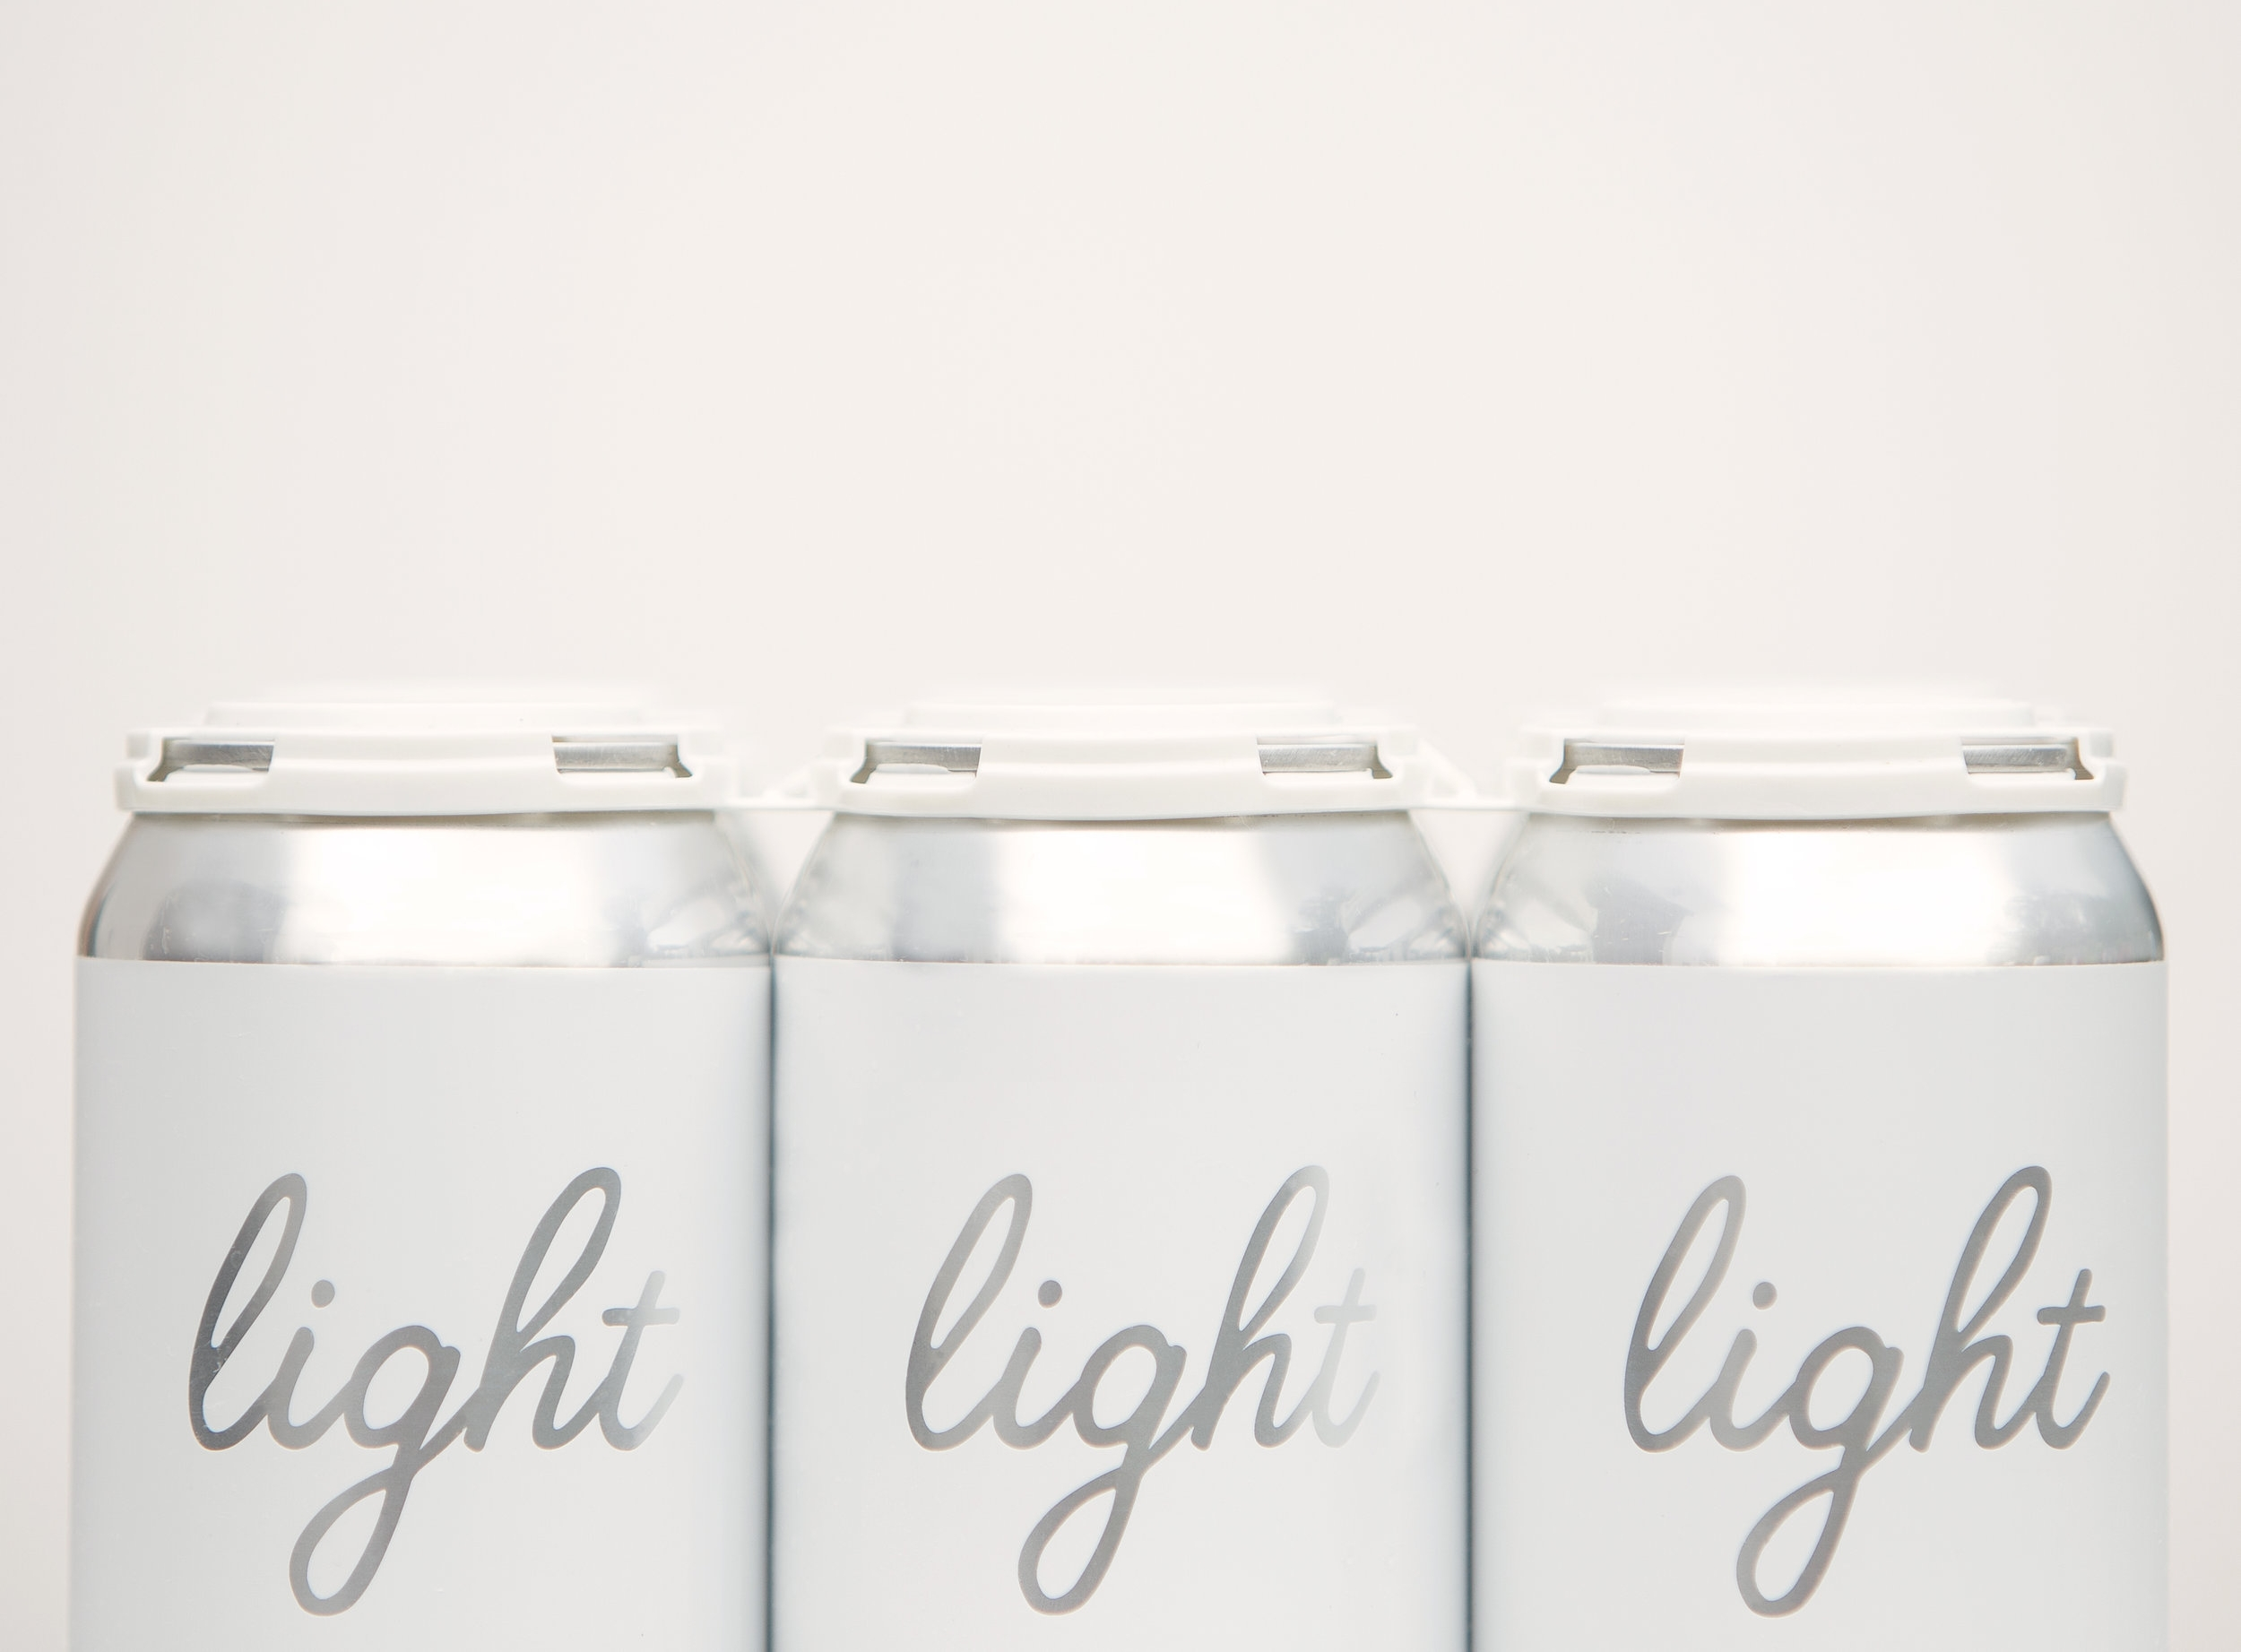 Photo of cans of Feel No Way Light